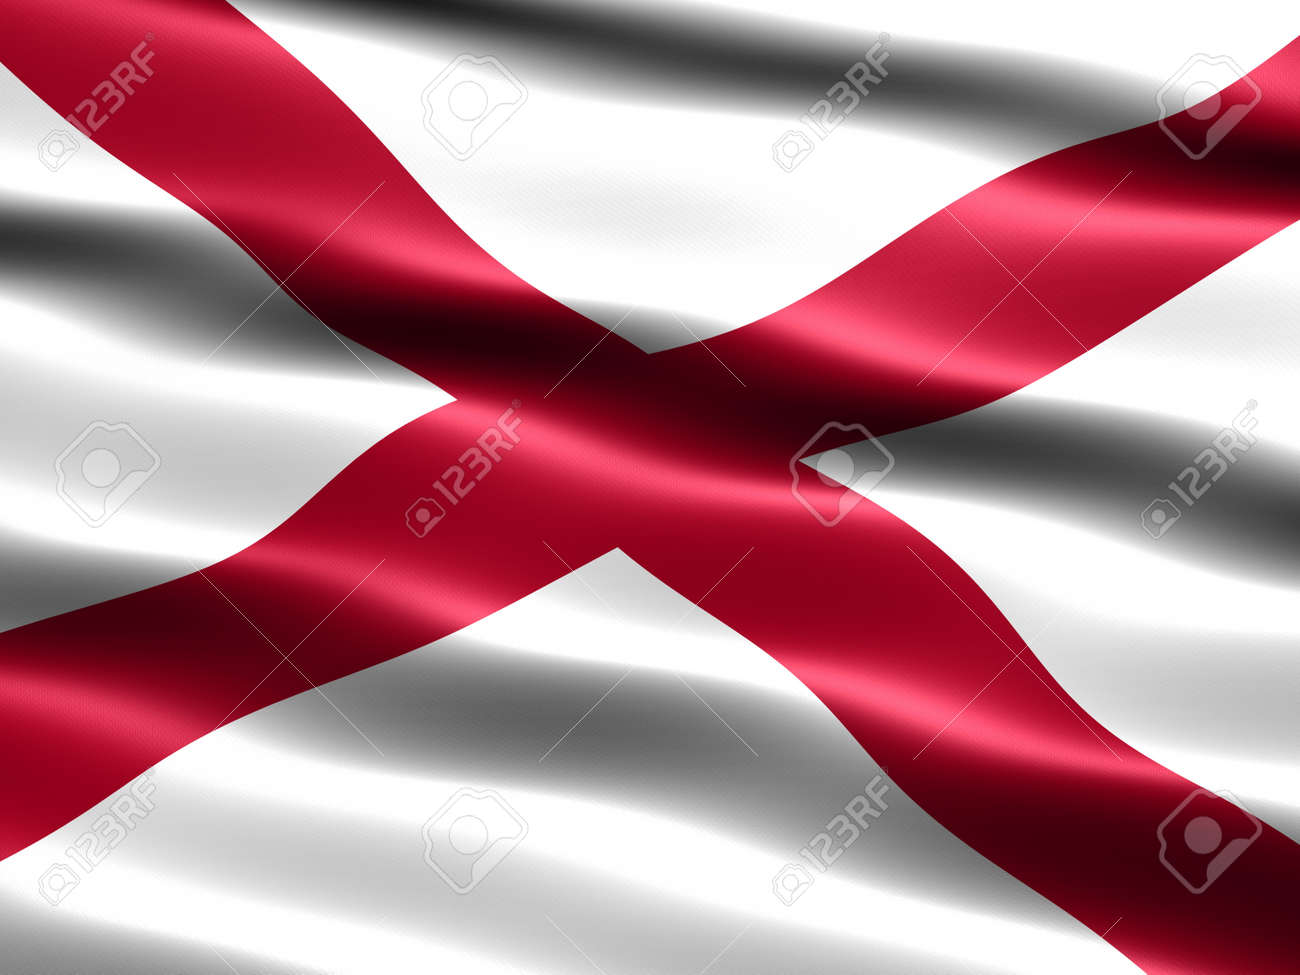 Computer generated illustration of the flag of the state of Alabama with silky appearance and waves Stock Photo - 1079911